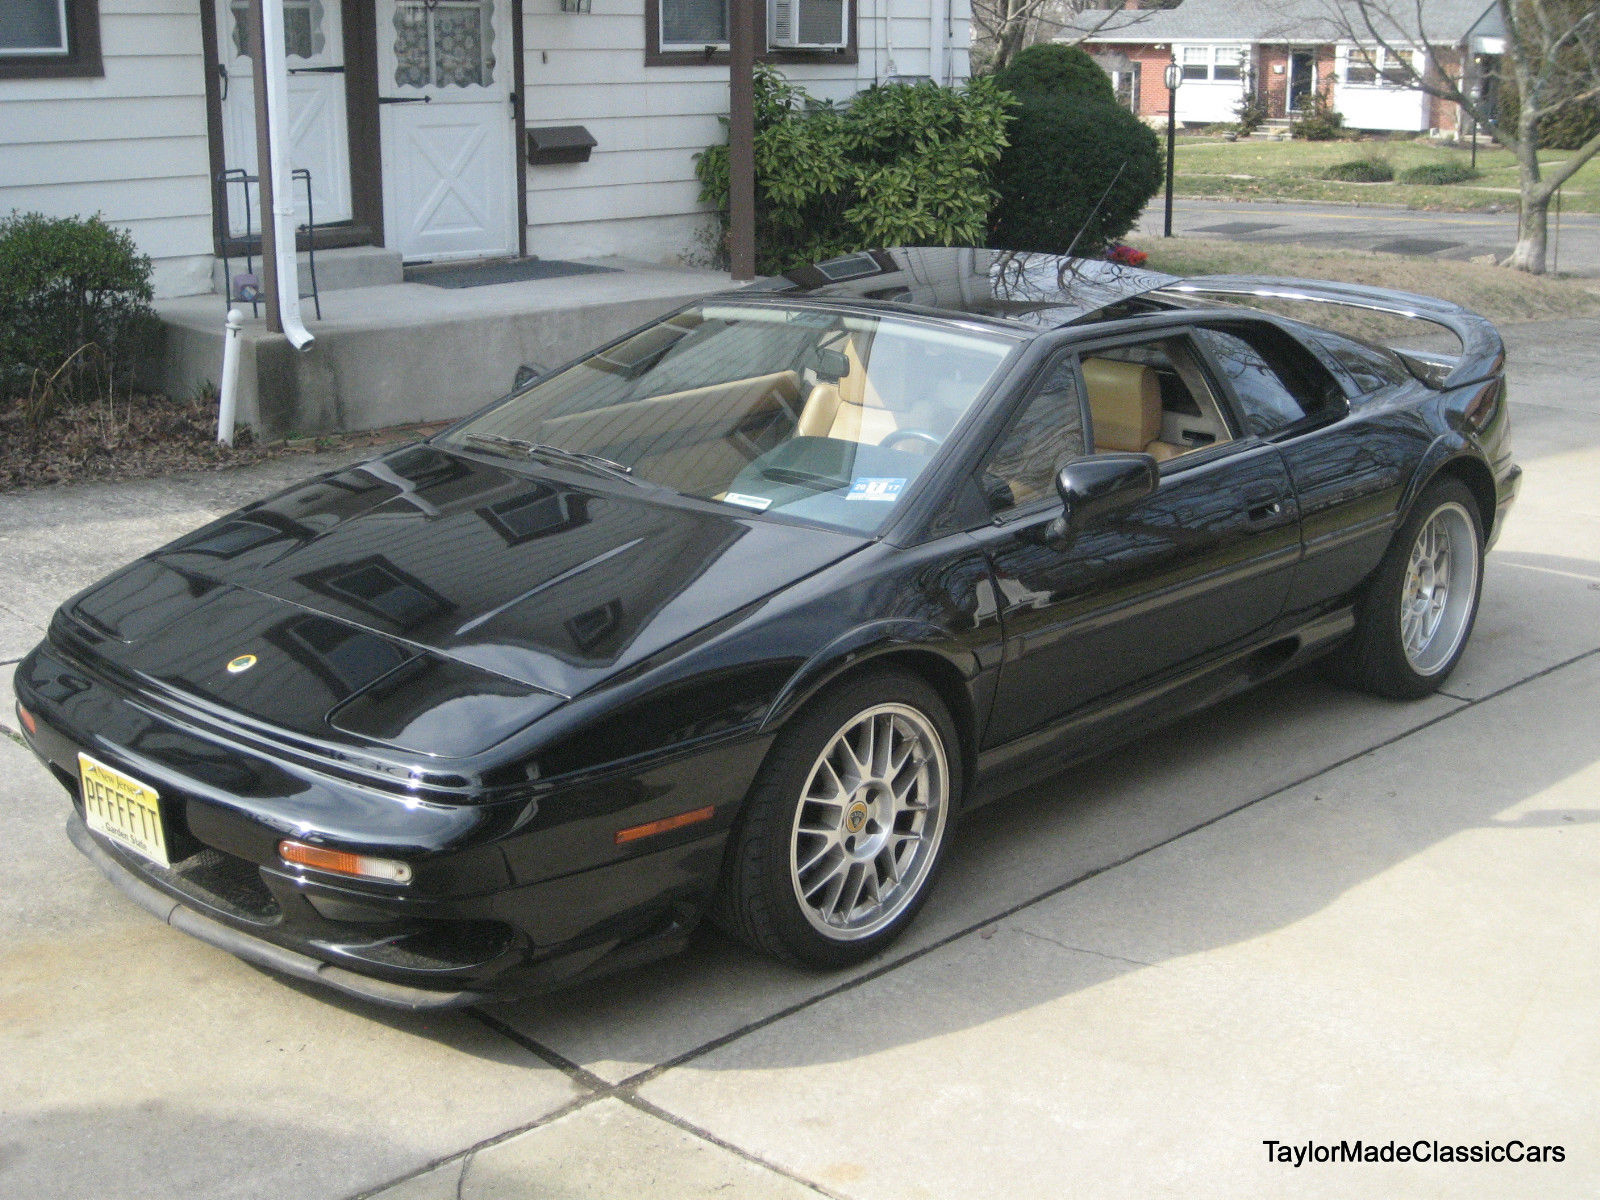 Money No Object: This Lotus Esprit V8 Was A Riot New, And Could Be Wicked With Today's Parts!